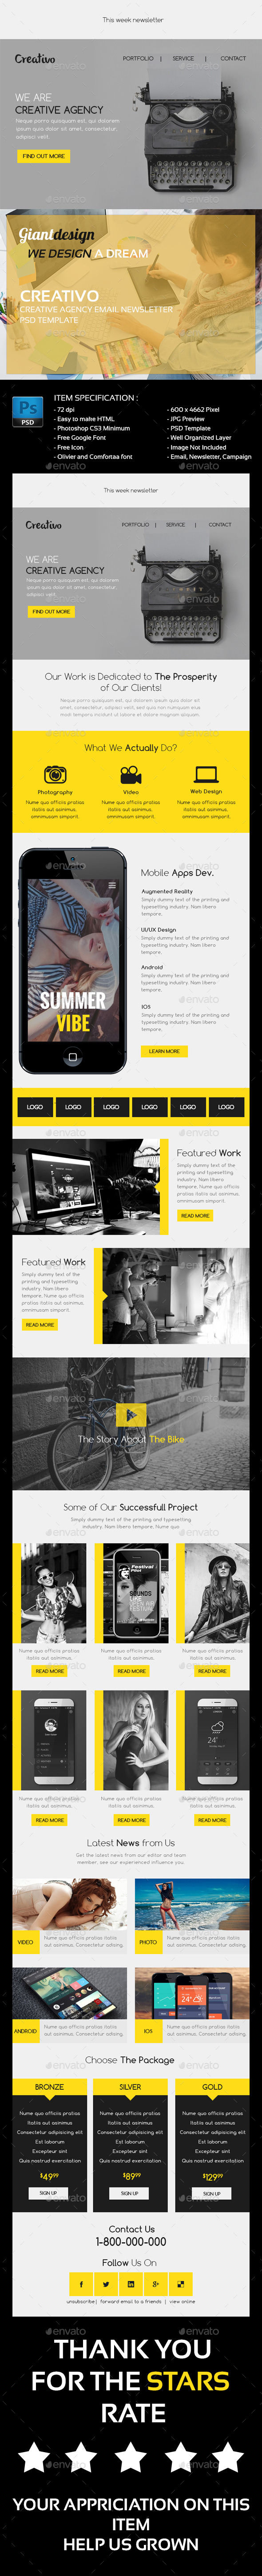 GraphicRiver Creativo Creative Agency Email Newsletter 10120646